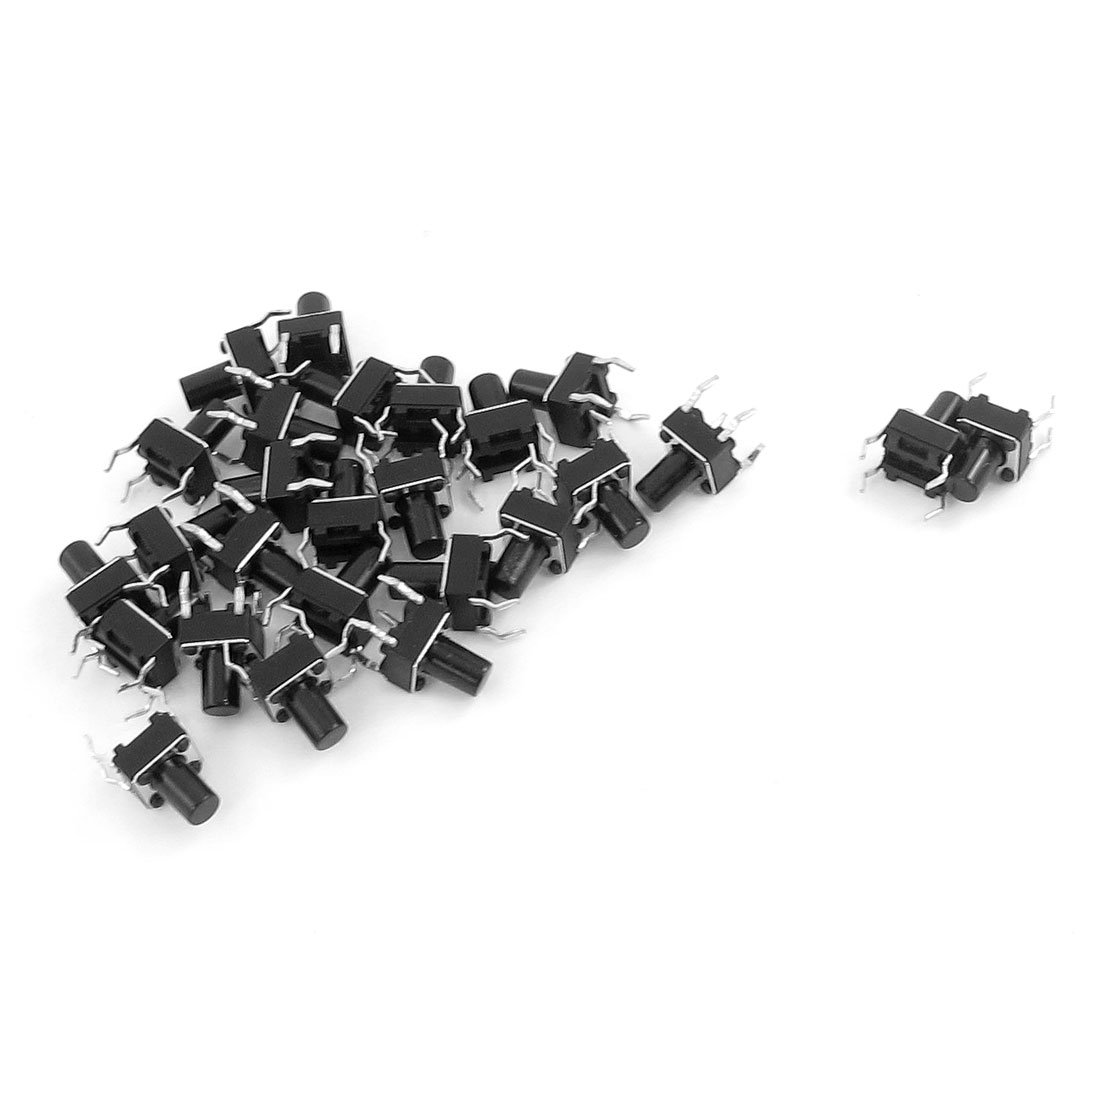 26 Pcs 6 x 6mm x 12mm PCB Momentary Tactile Tact Push Button Switch 4 Pin DIP